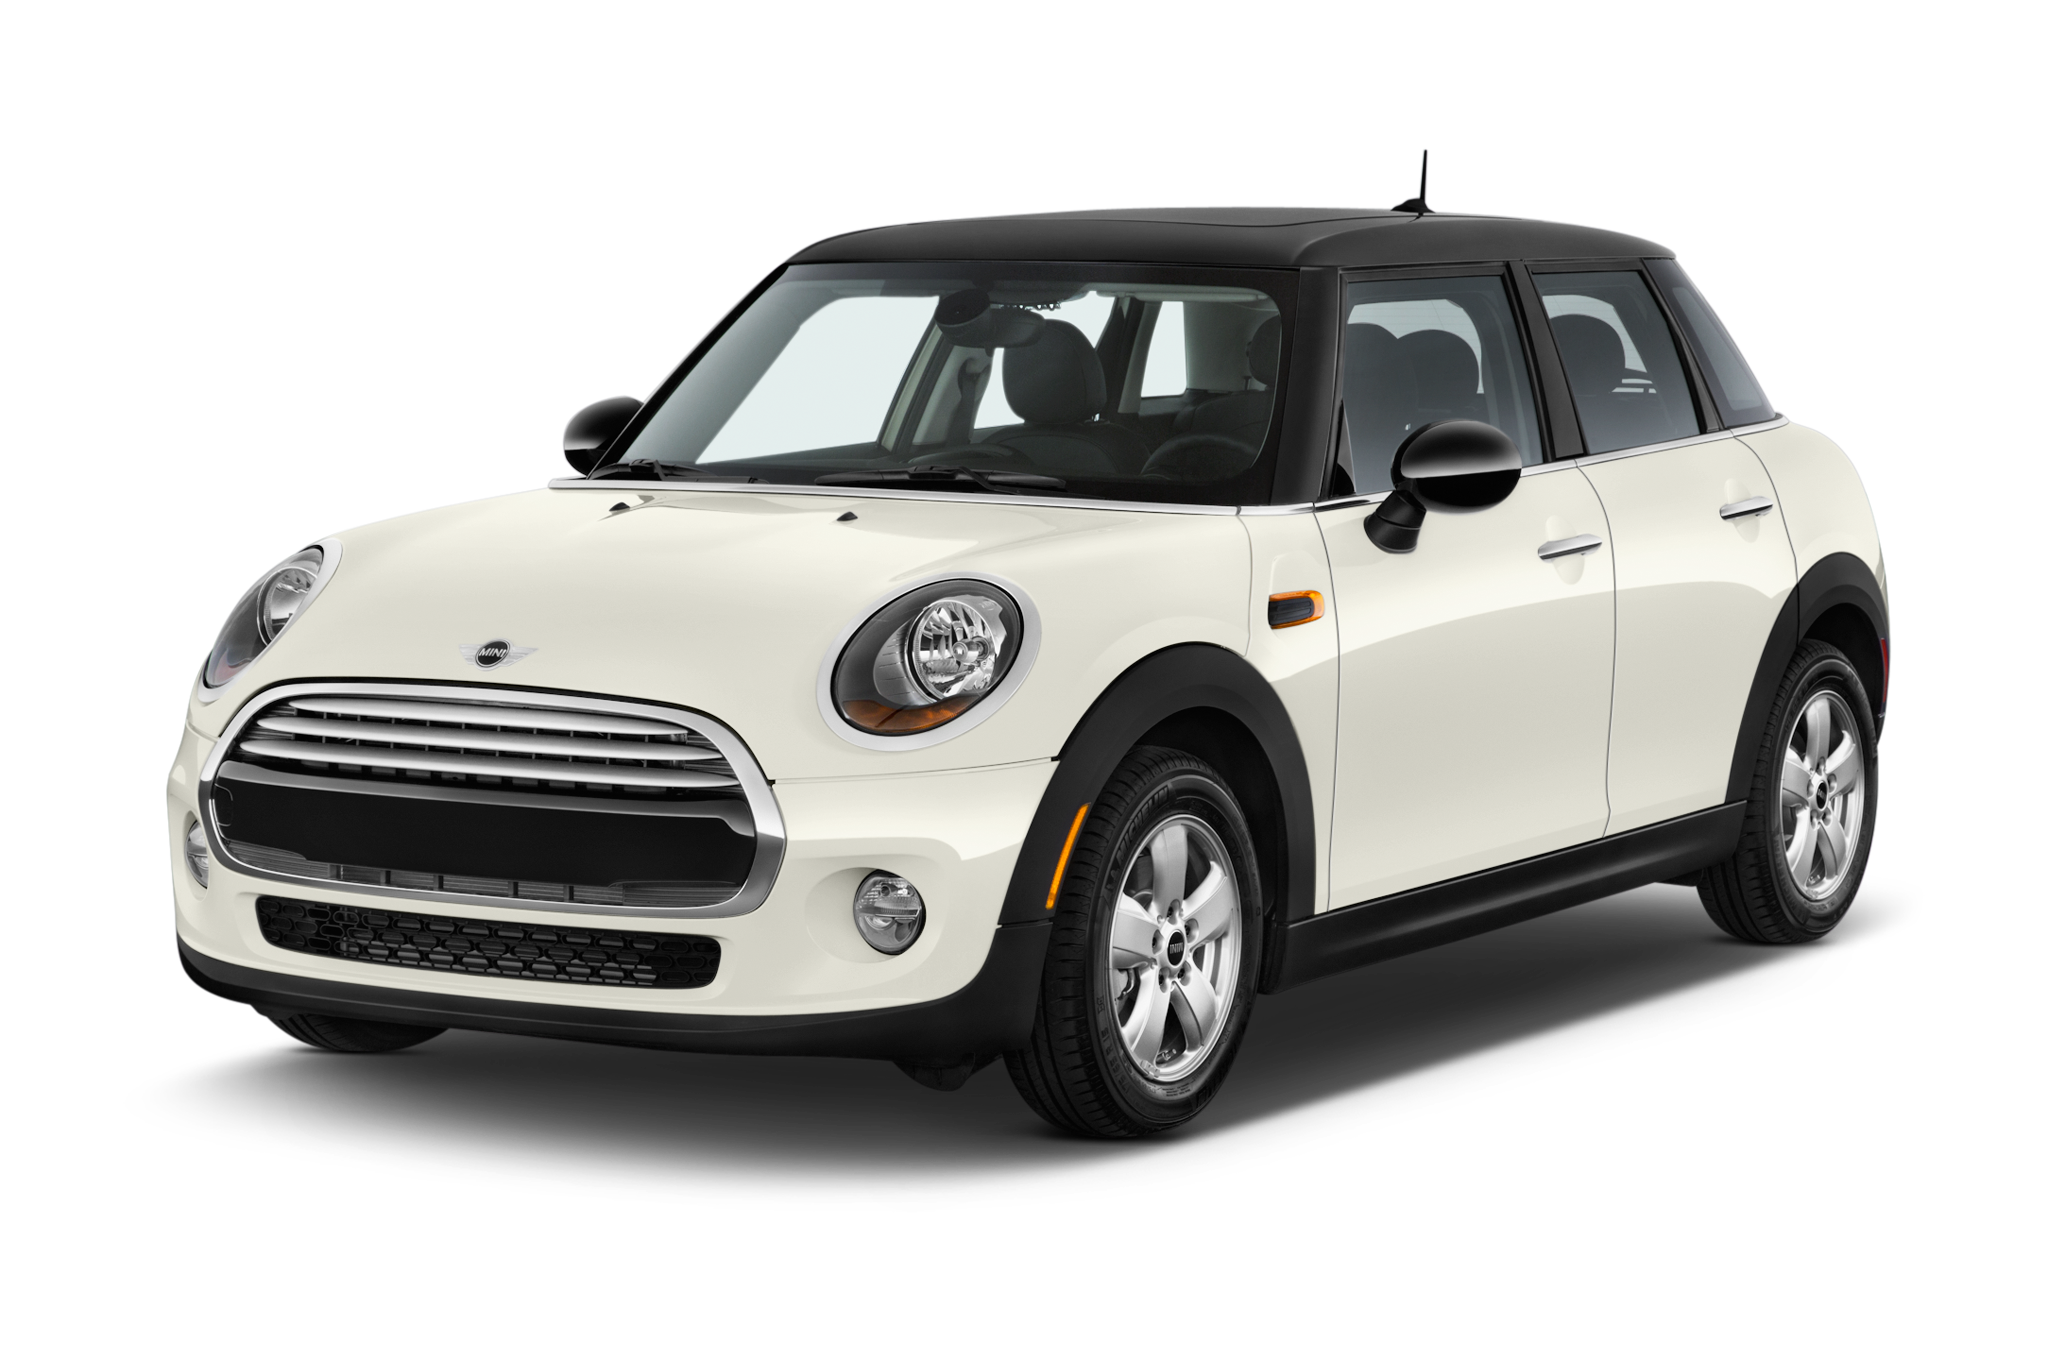 Report 2015 Mini Cooper Jcw To Get 231 Hp From New Engine Wiring Diagram 1 250